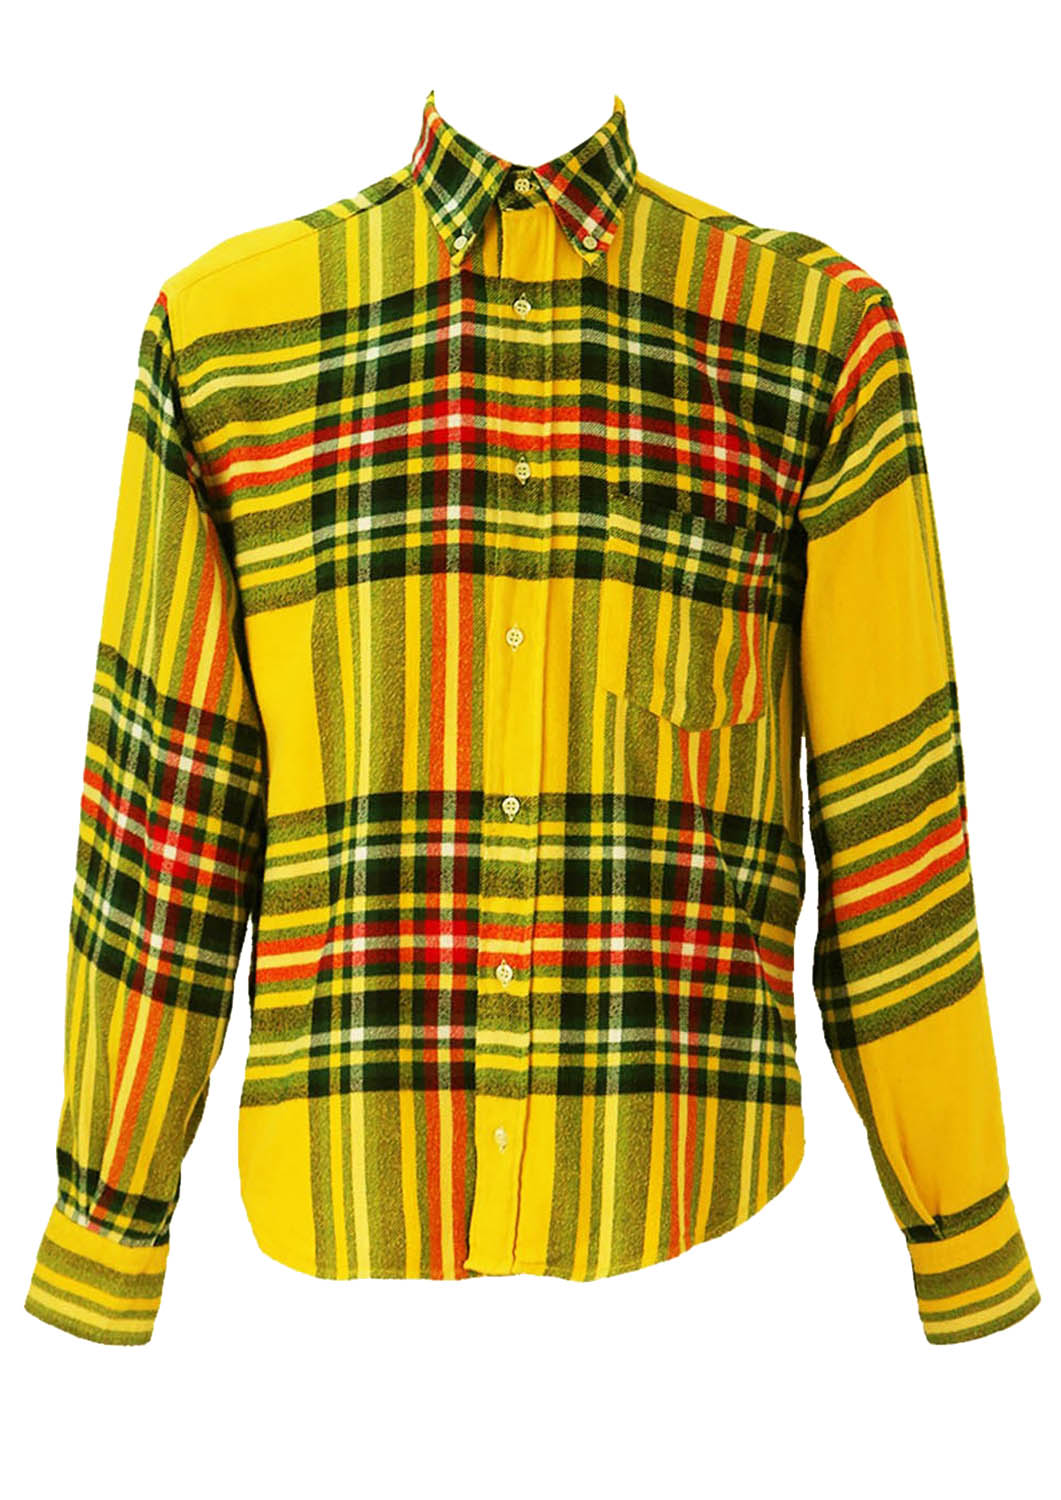 Bright Yellow Tartan Check Flannel Shirt L Reign Vintage